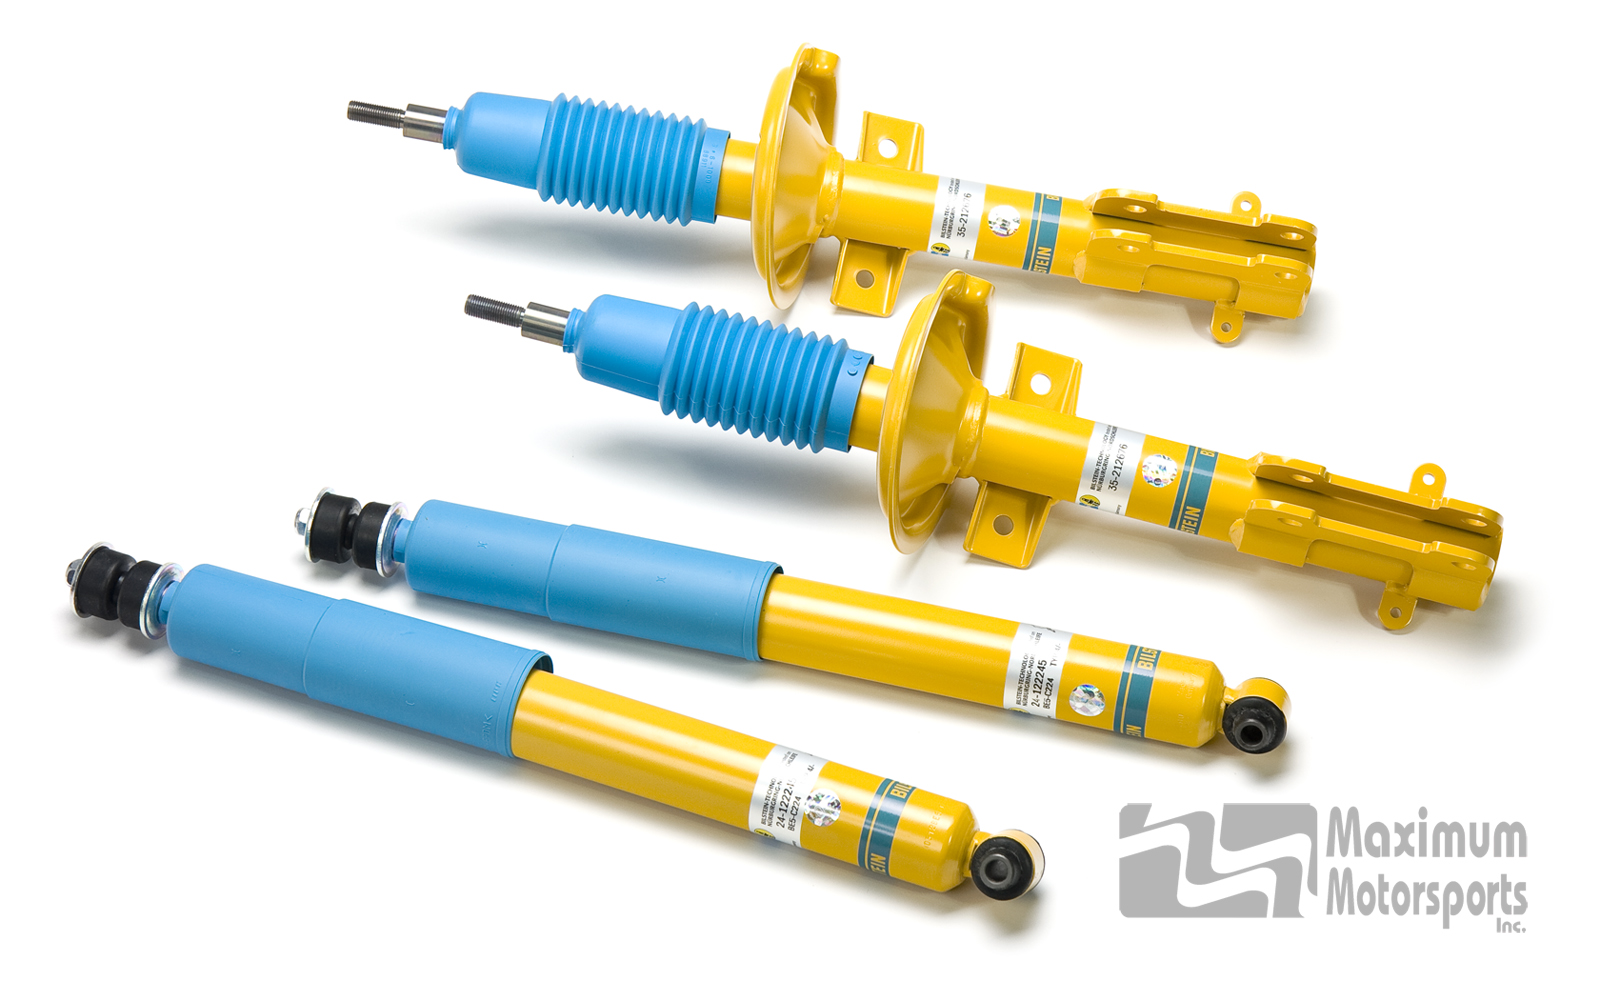 2011-2014 Bilstein HD series Damper Package